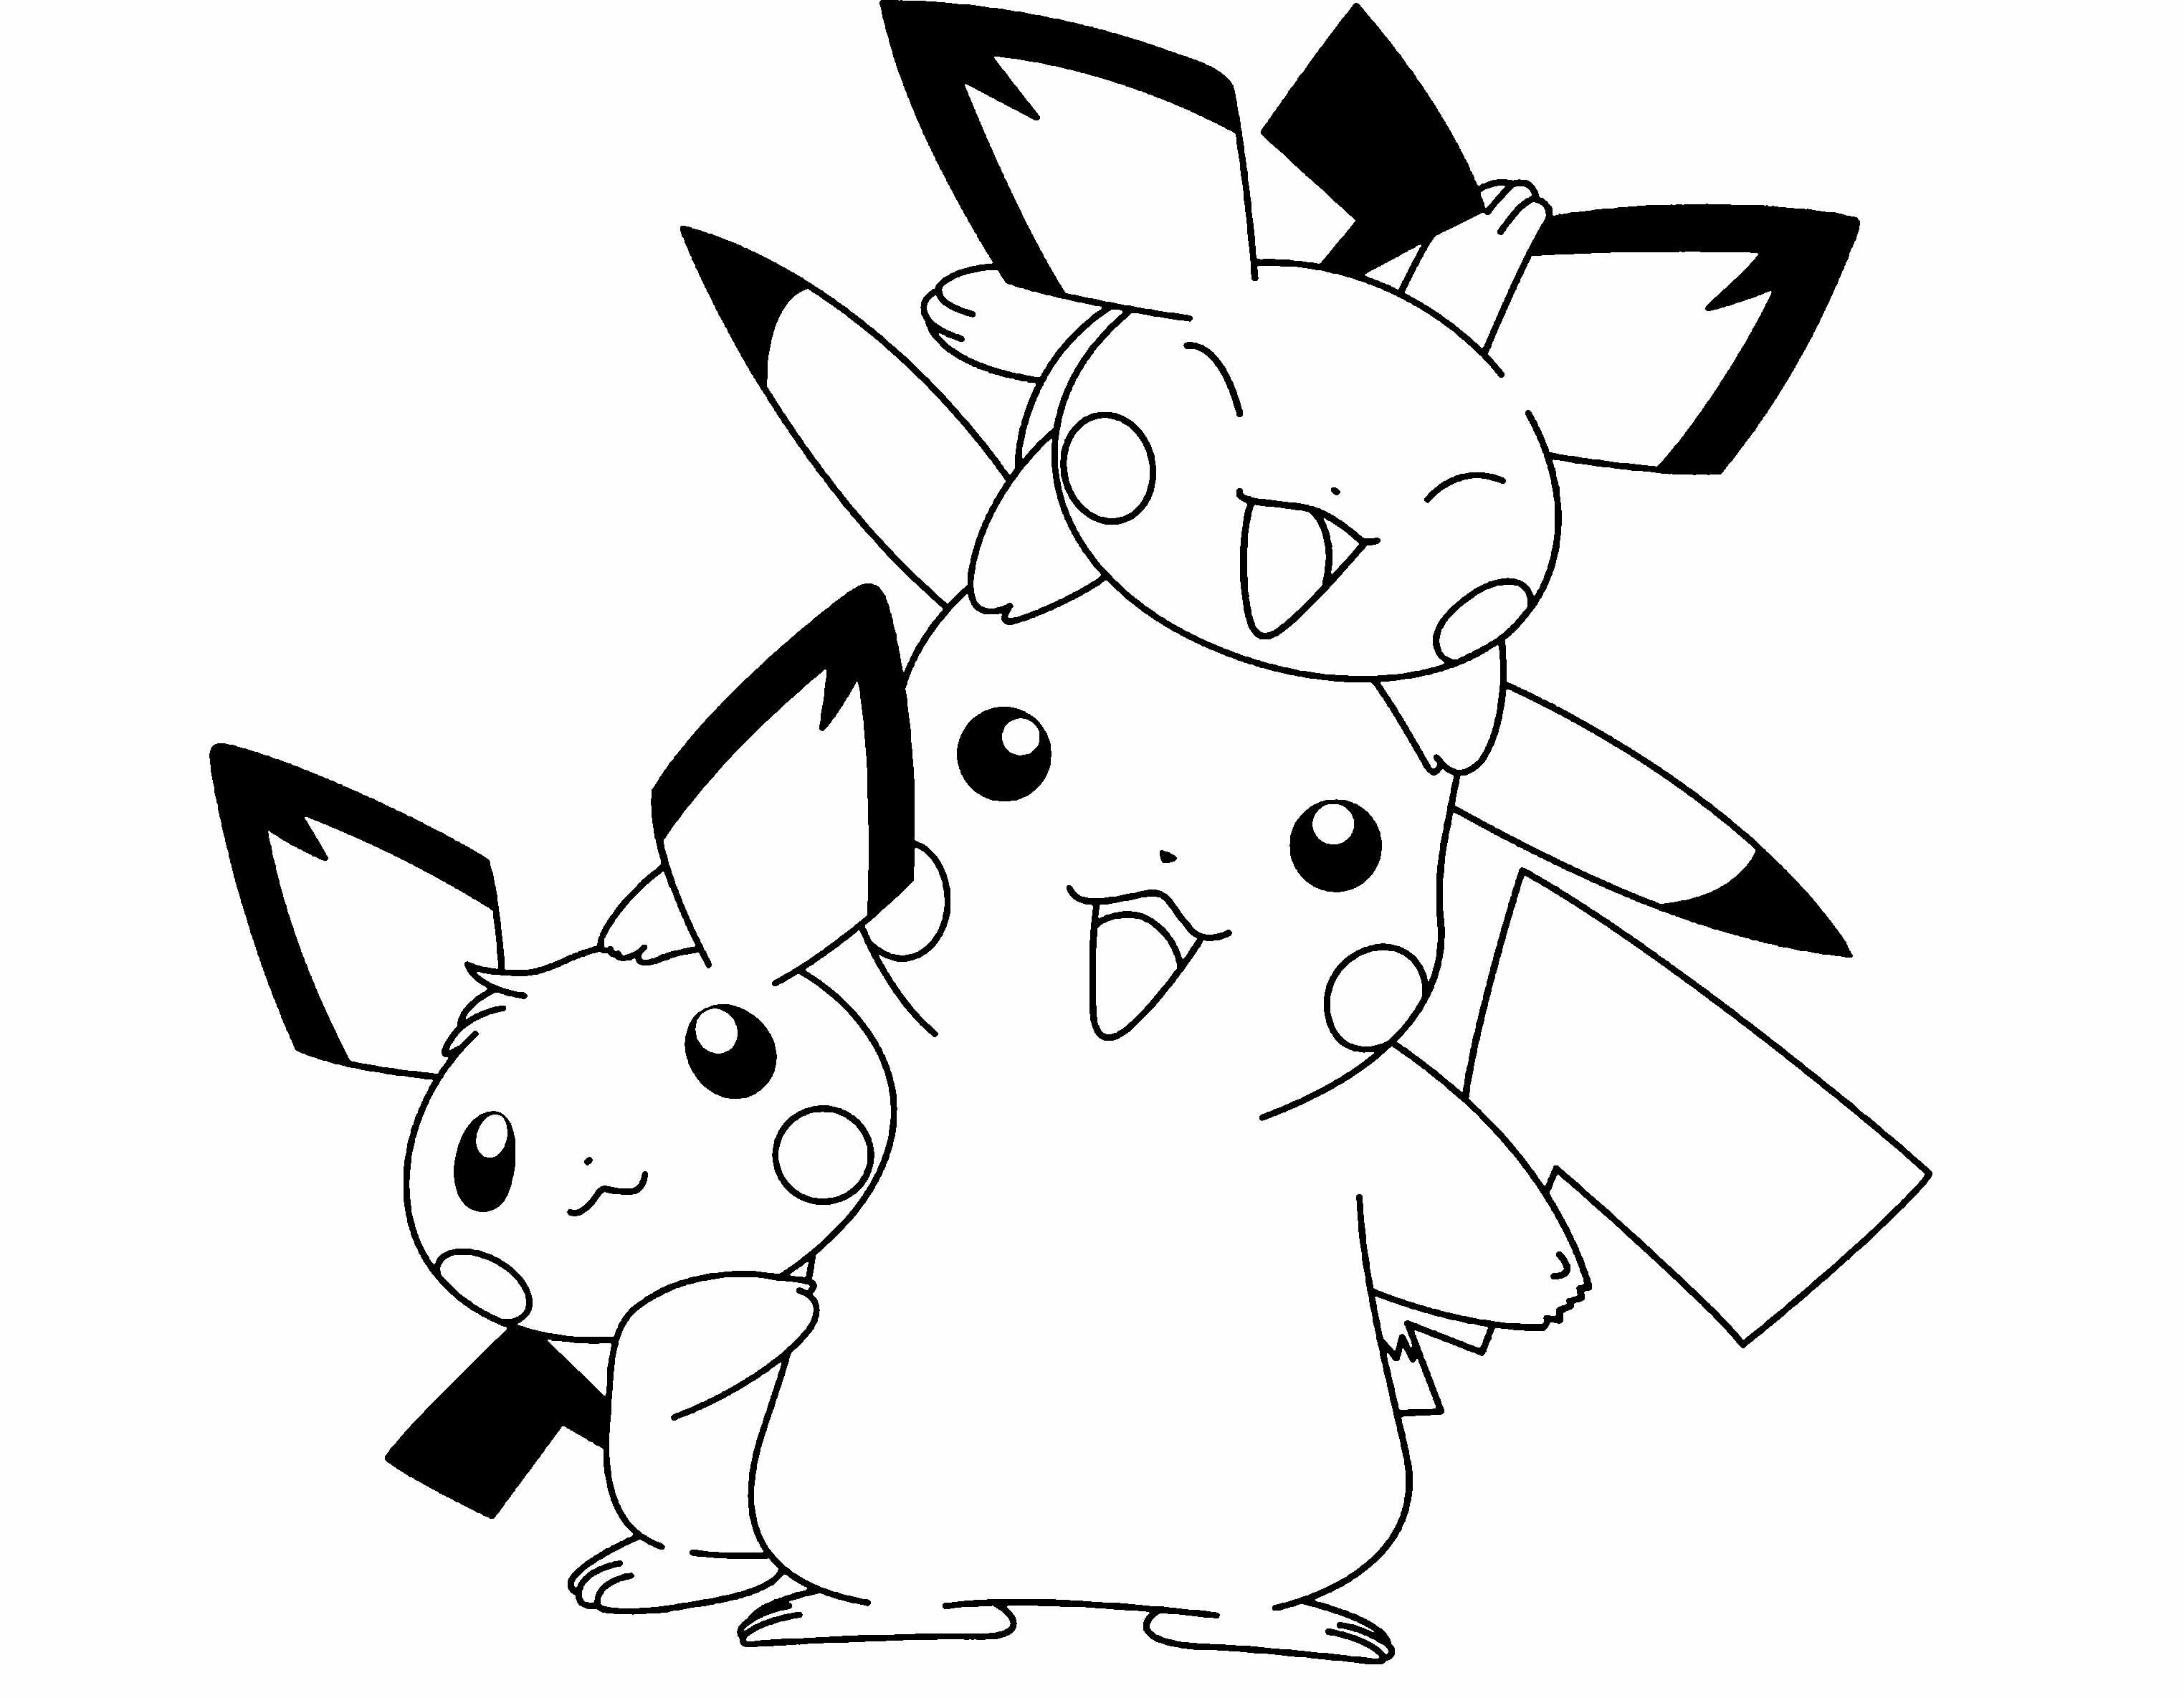 Pokemon Pikachu And Two Friends Are Cute Coloring Page Pokemon Malvorlagen Mandala Malvorlagen Ausmalbilder